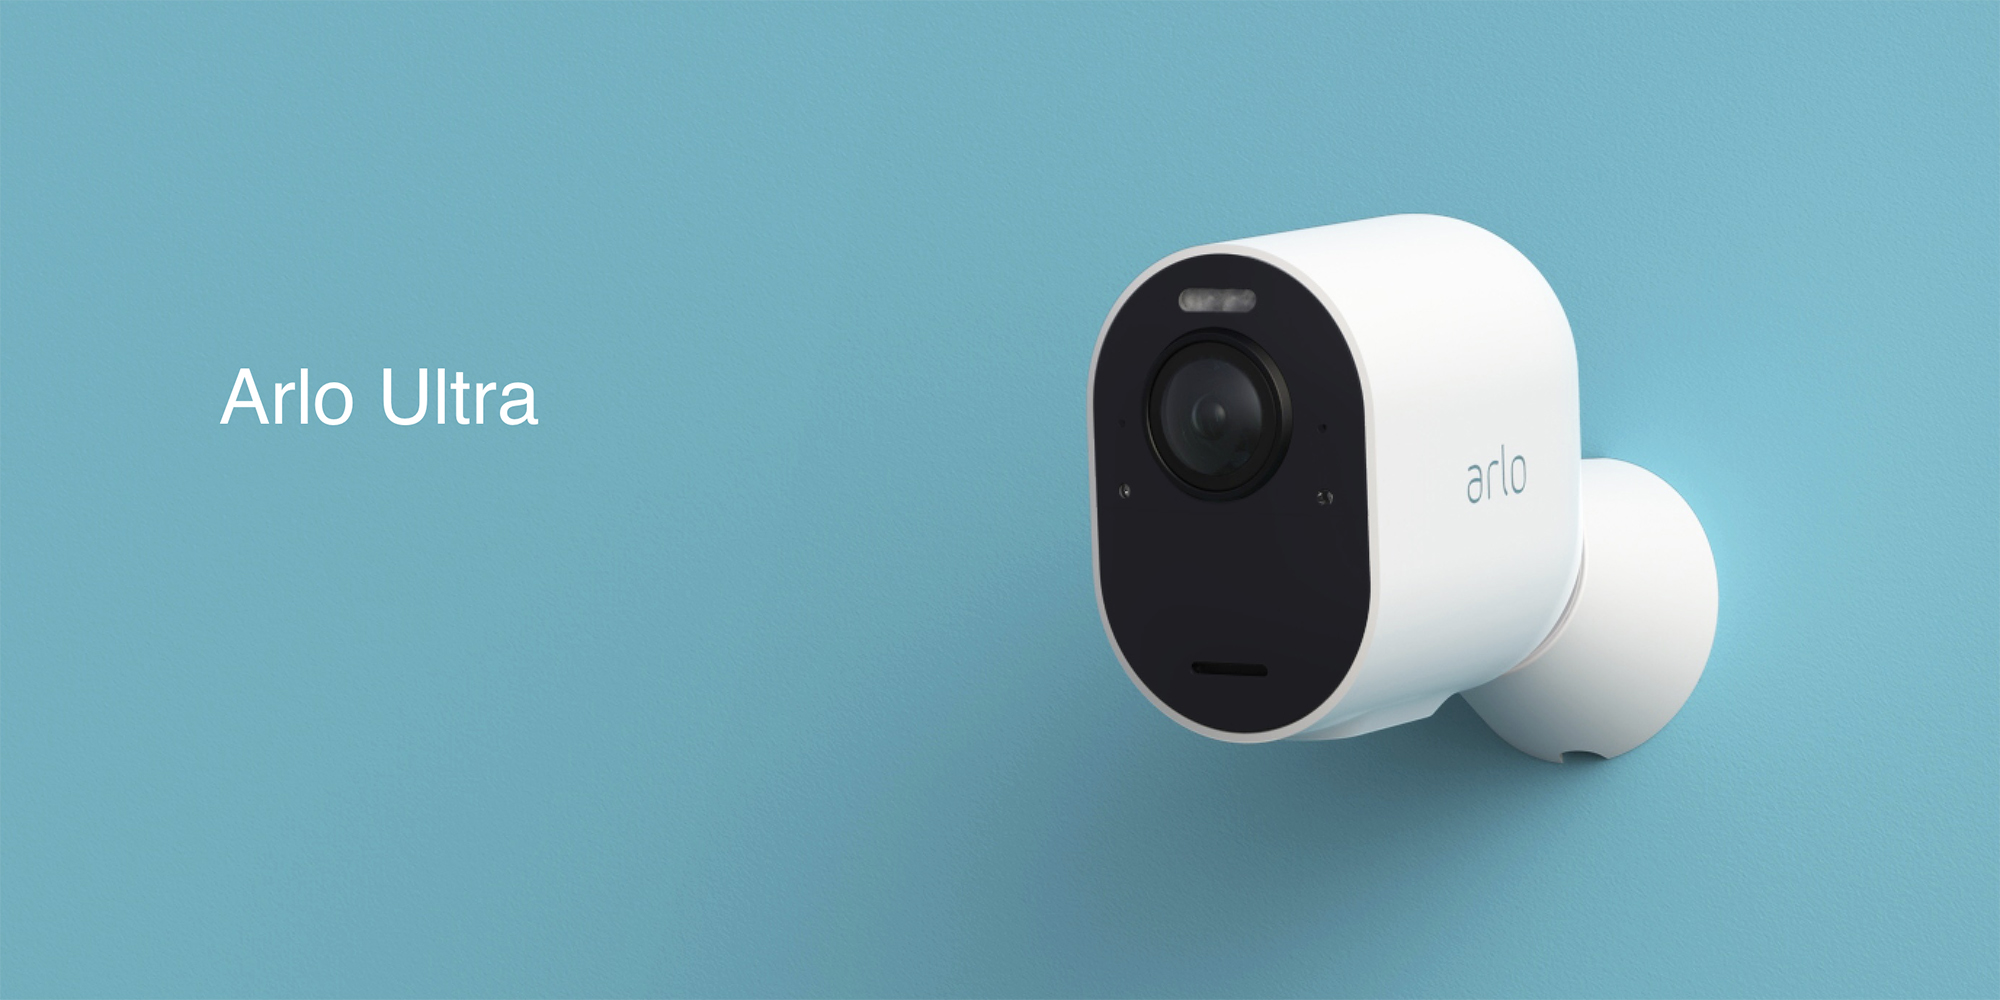 Arlo Ultra security cameras re-launch with 4K and HDR support, HomeKit on the way